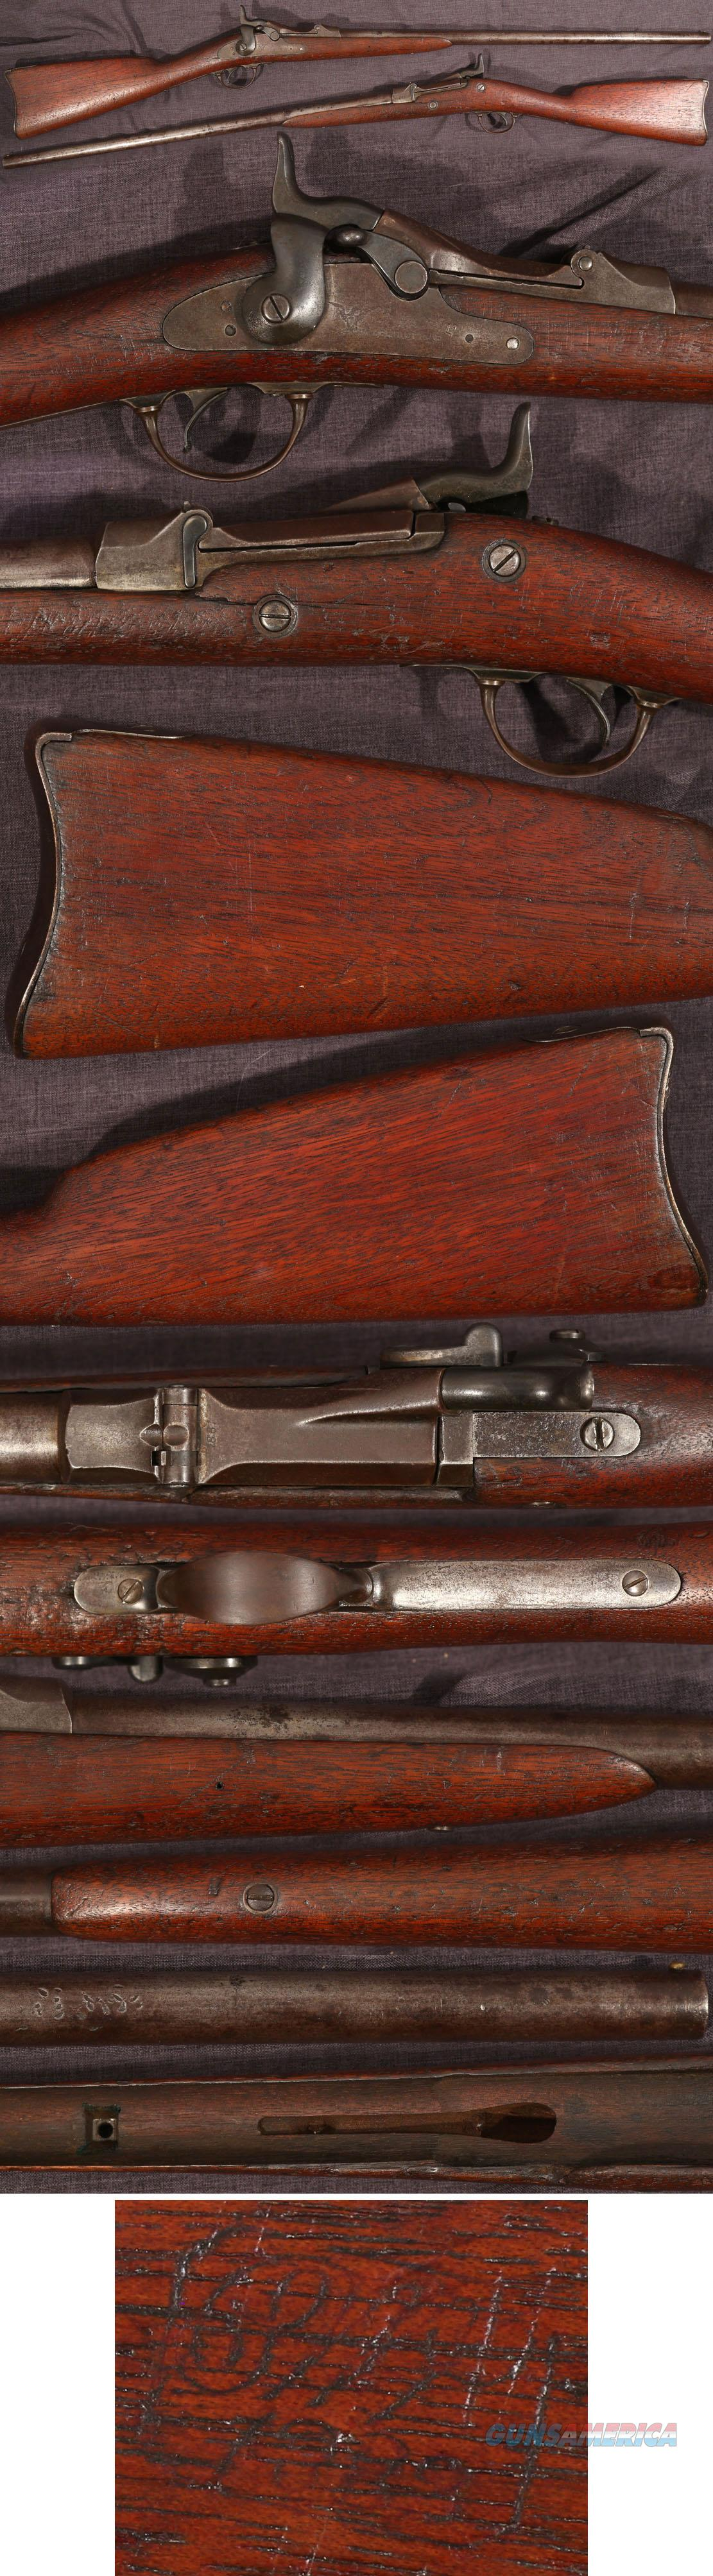 "original Springfield M1881 ""Forager"" 20 gauge shotgun  Guns > Shotguns > Antique (Pre-1899) Shotguns - Misc."